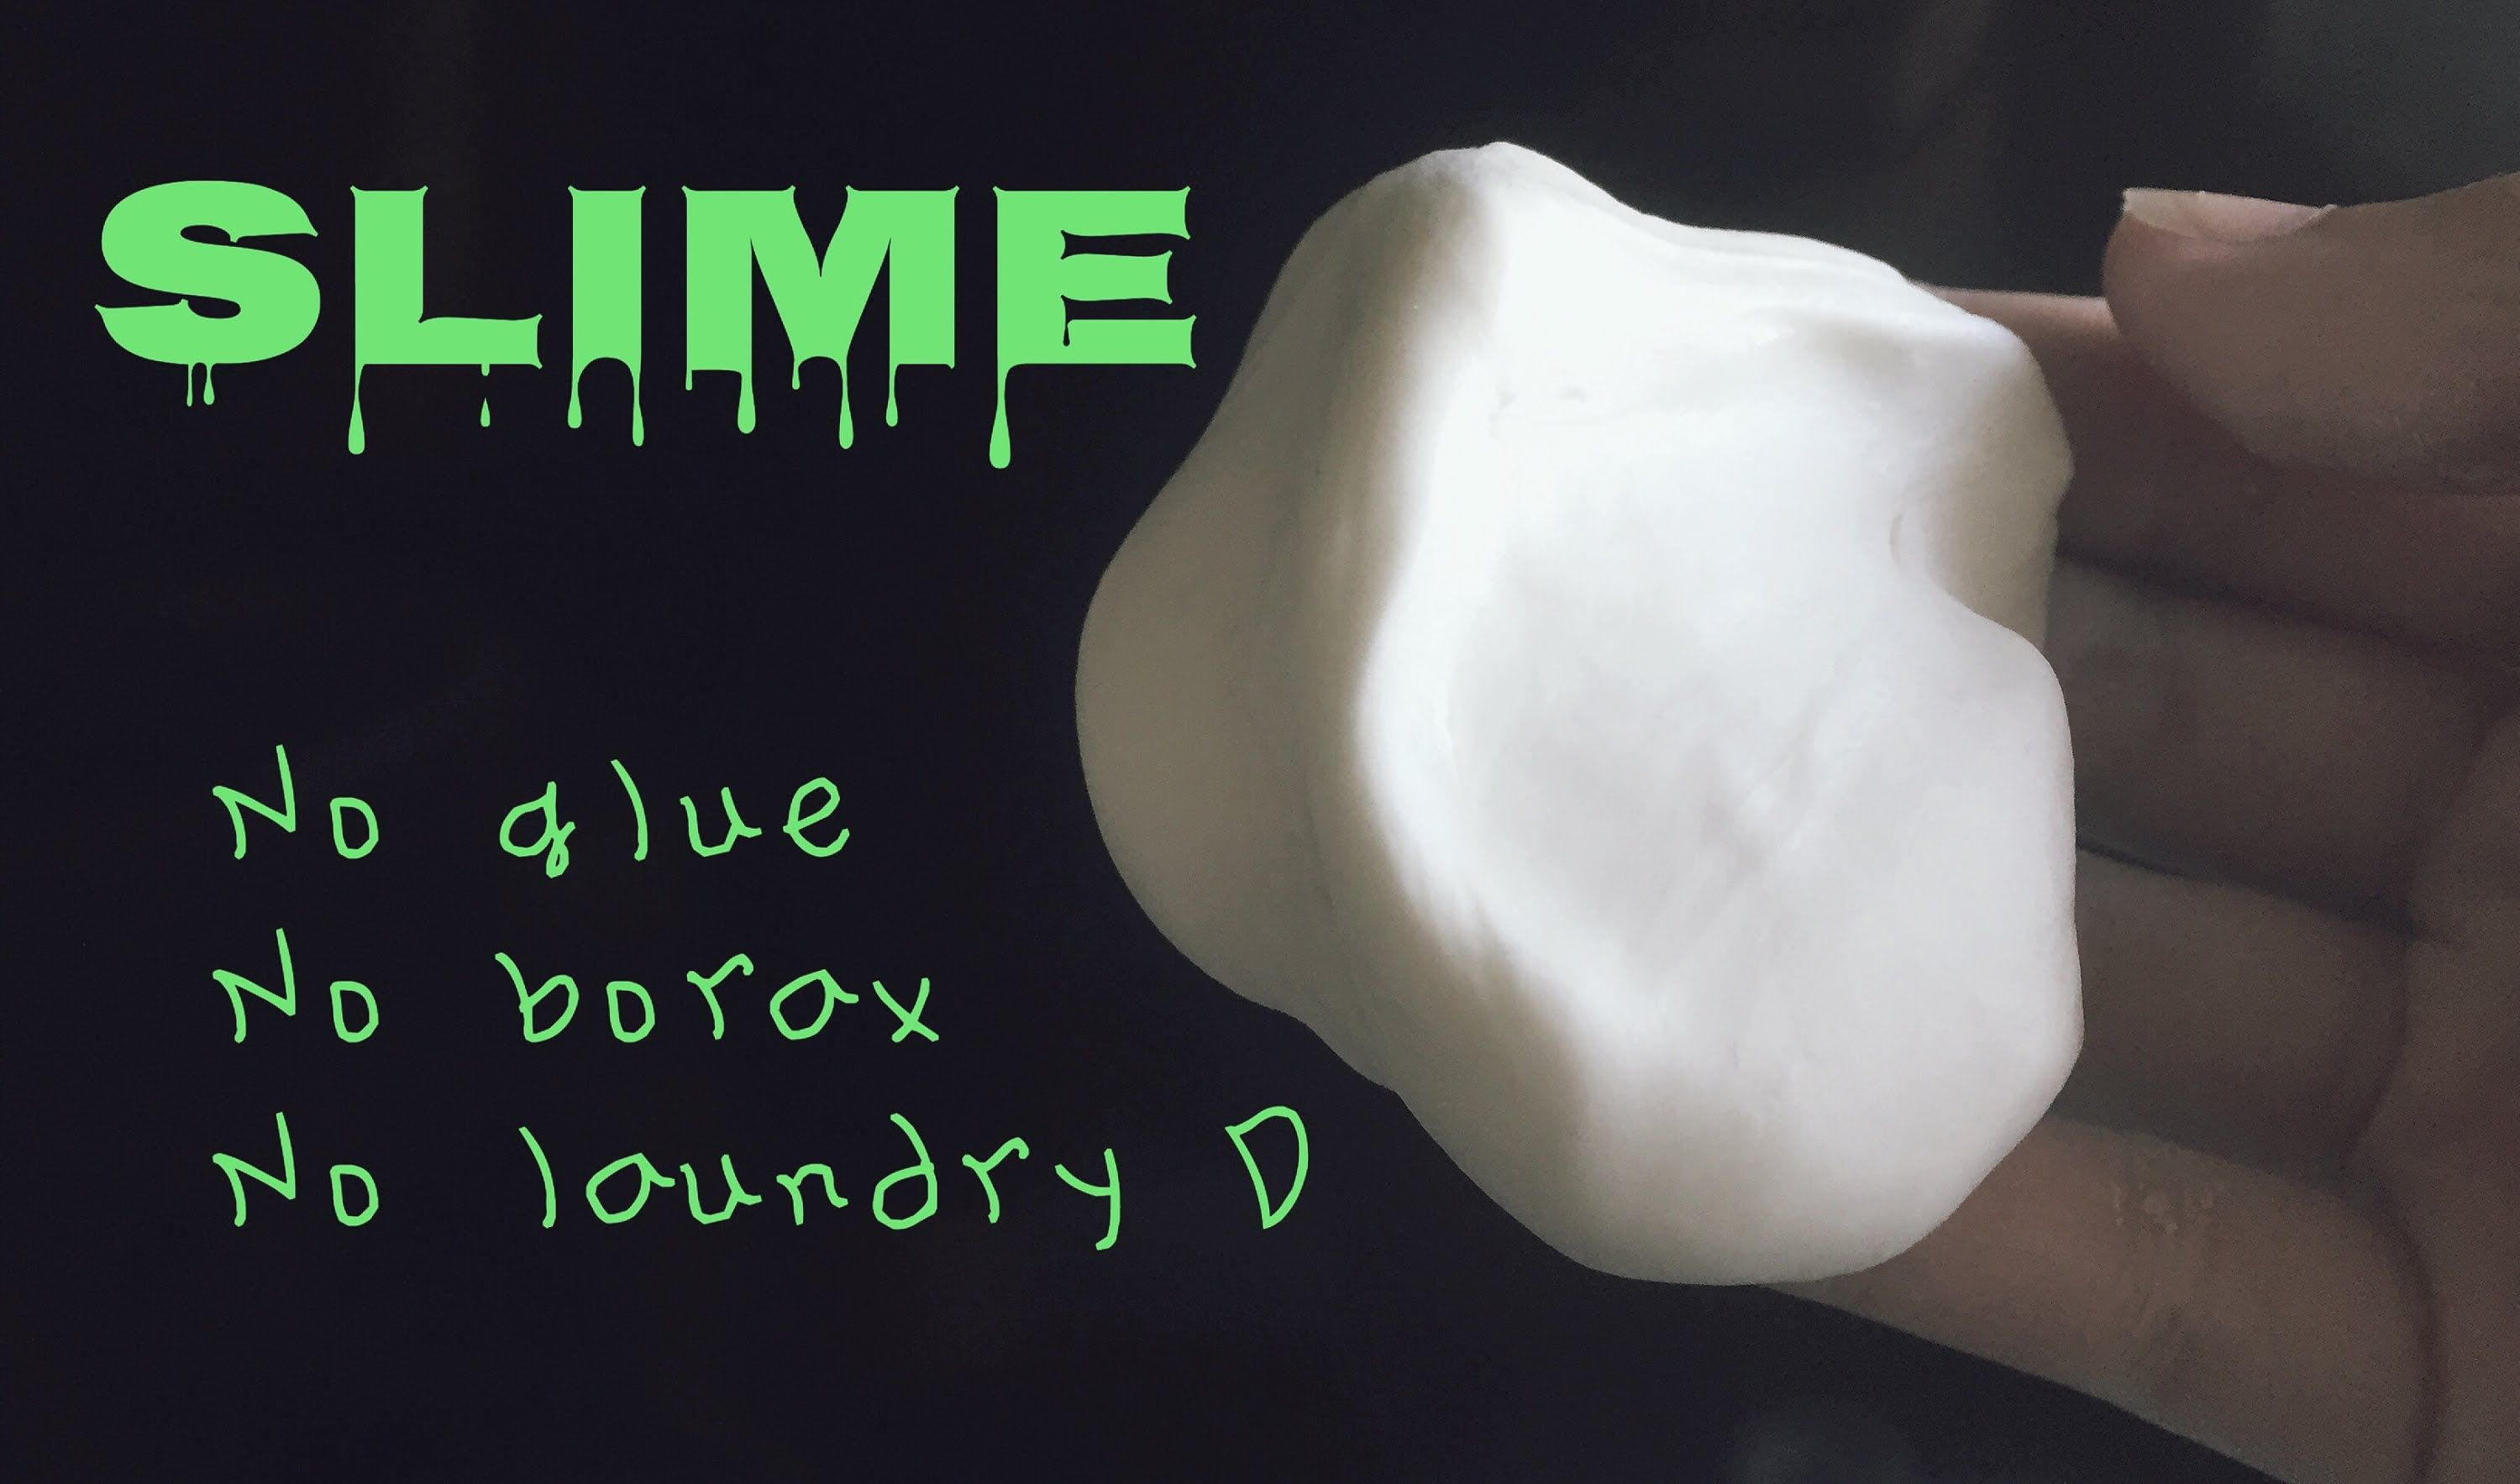 Repost bc better quality if u want it to be slimy then add more this is like an alternative slime for people who dont have the other ingredients to make the regular slimed w glue borax laundry detergent etc ccuart Images